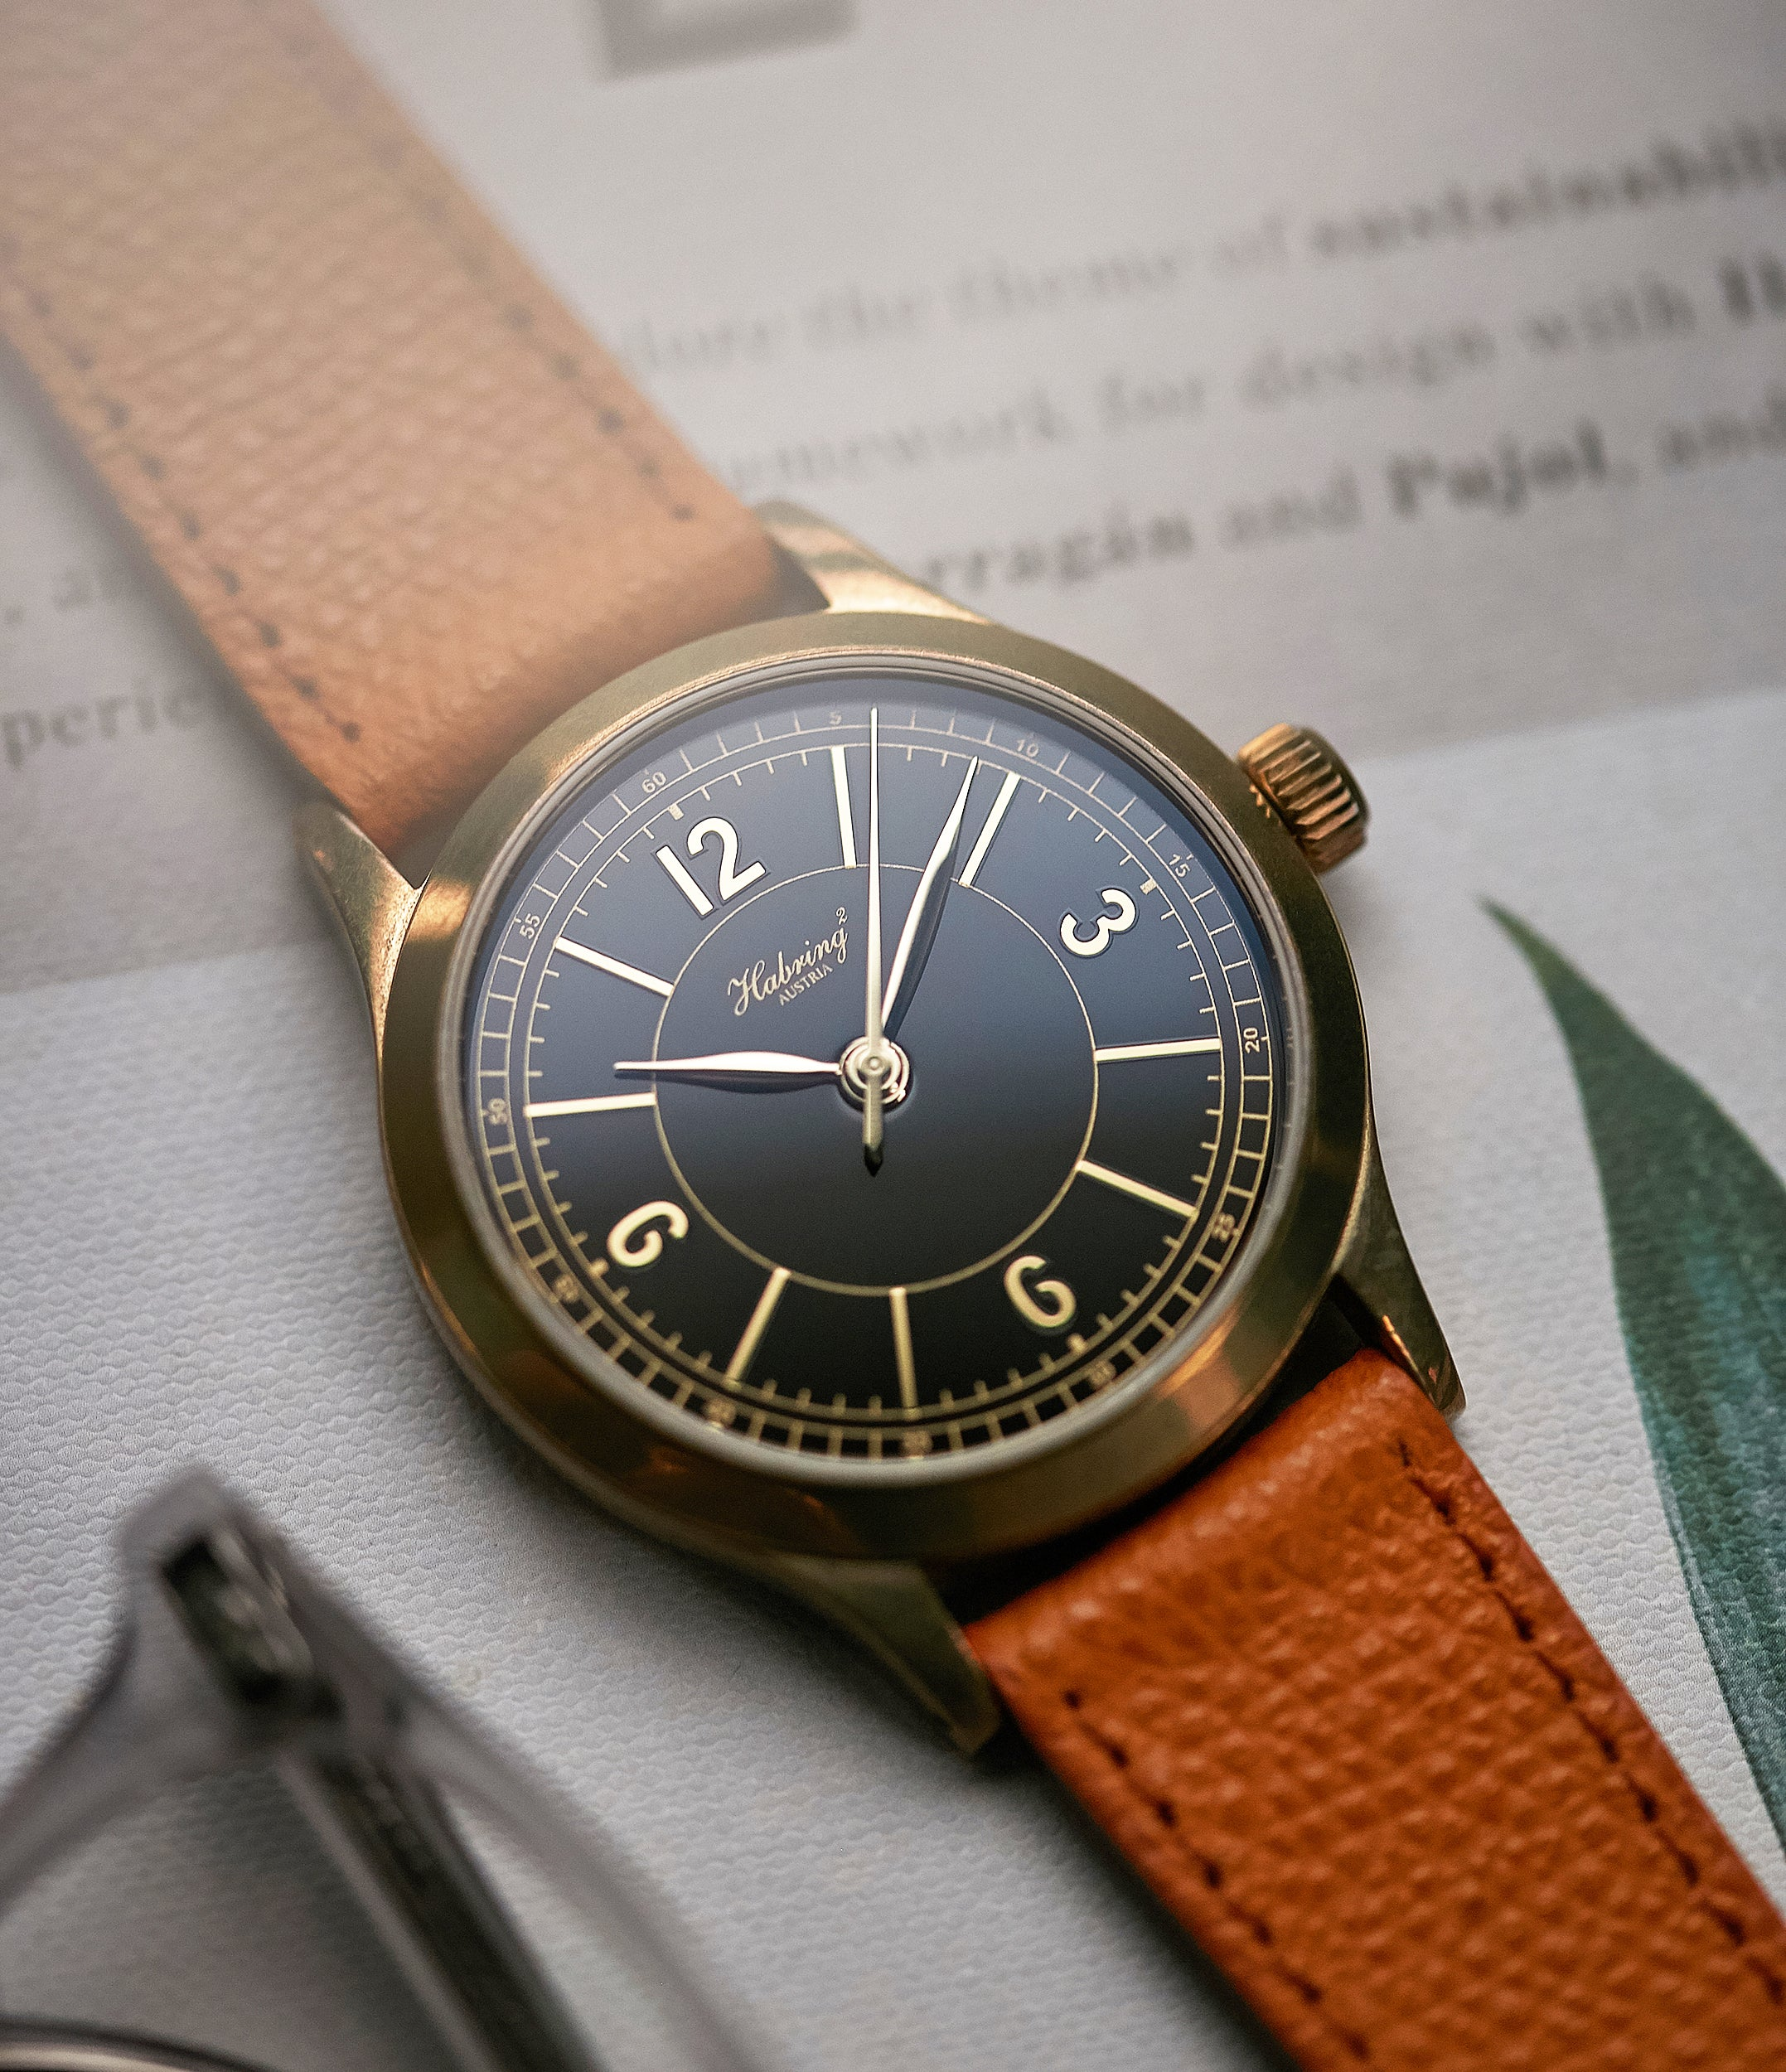 selling Habring2 Erwin LAB 01 Massena LAB Limited Edition bronze independent watchmaker dress watch for sale online at A Collected Man London UK rare watches